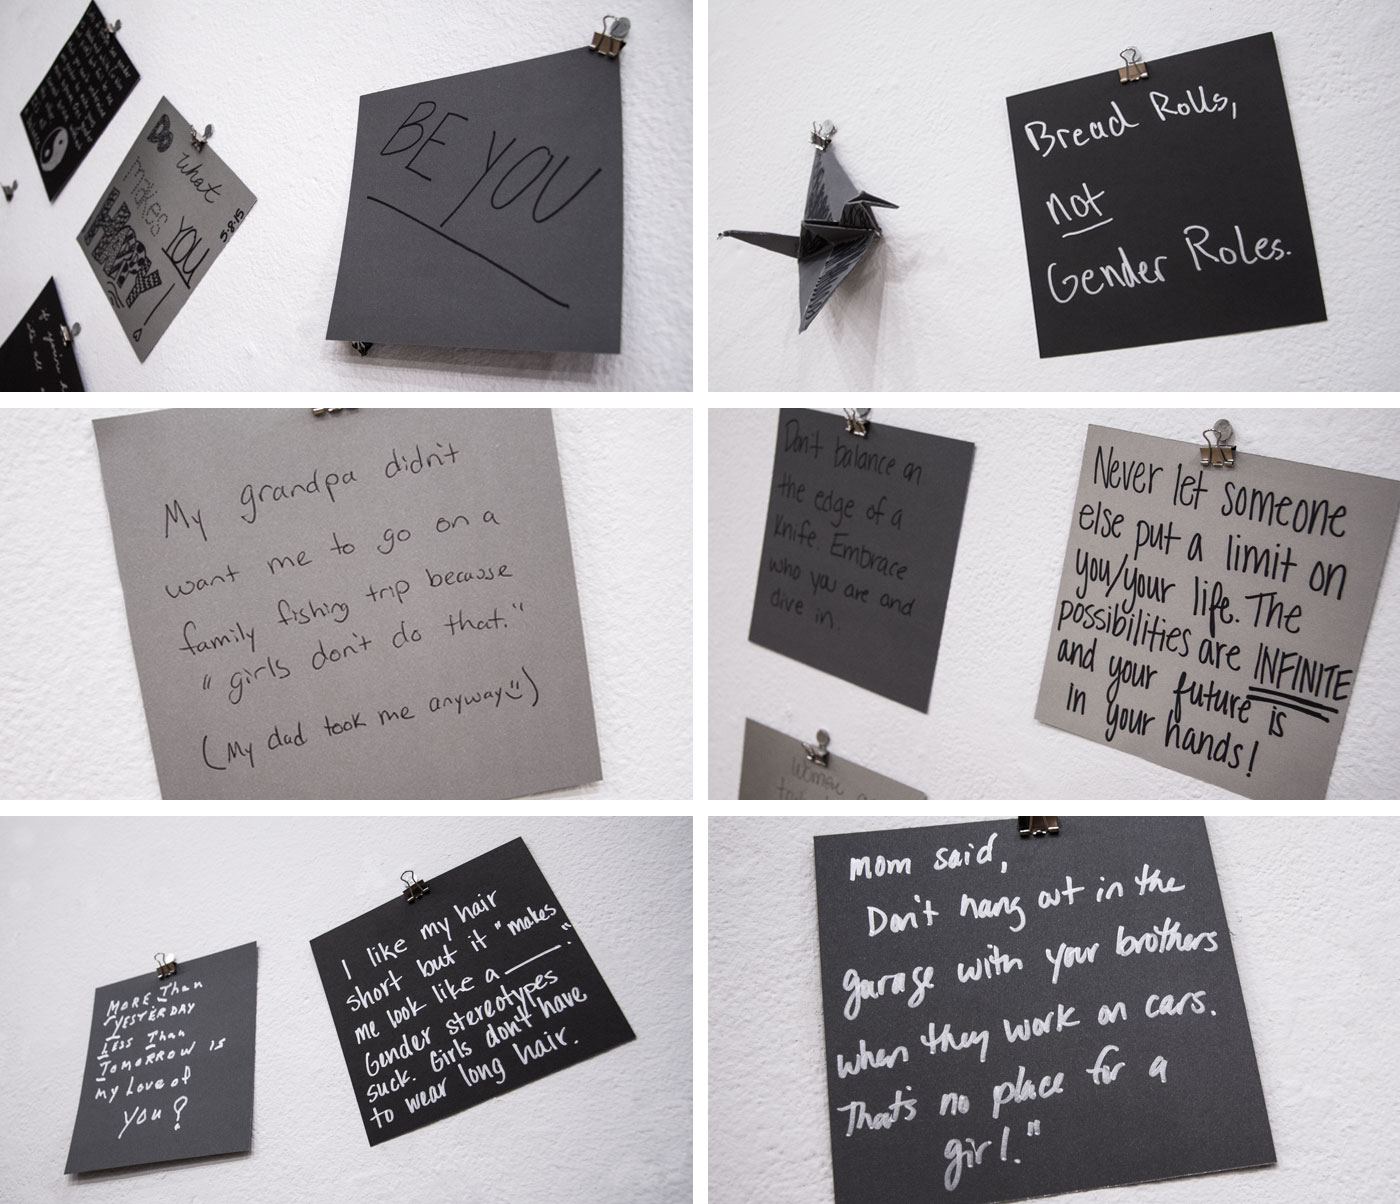 Lose the Labels Social Campaign Gallery Installation by Chelsea Studensk